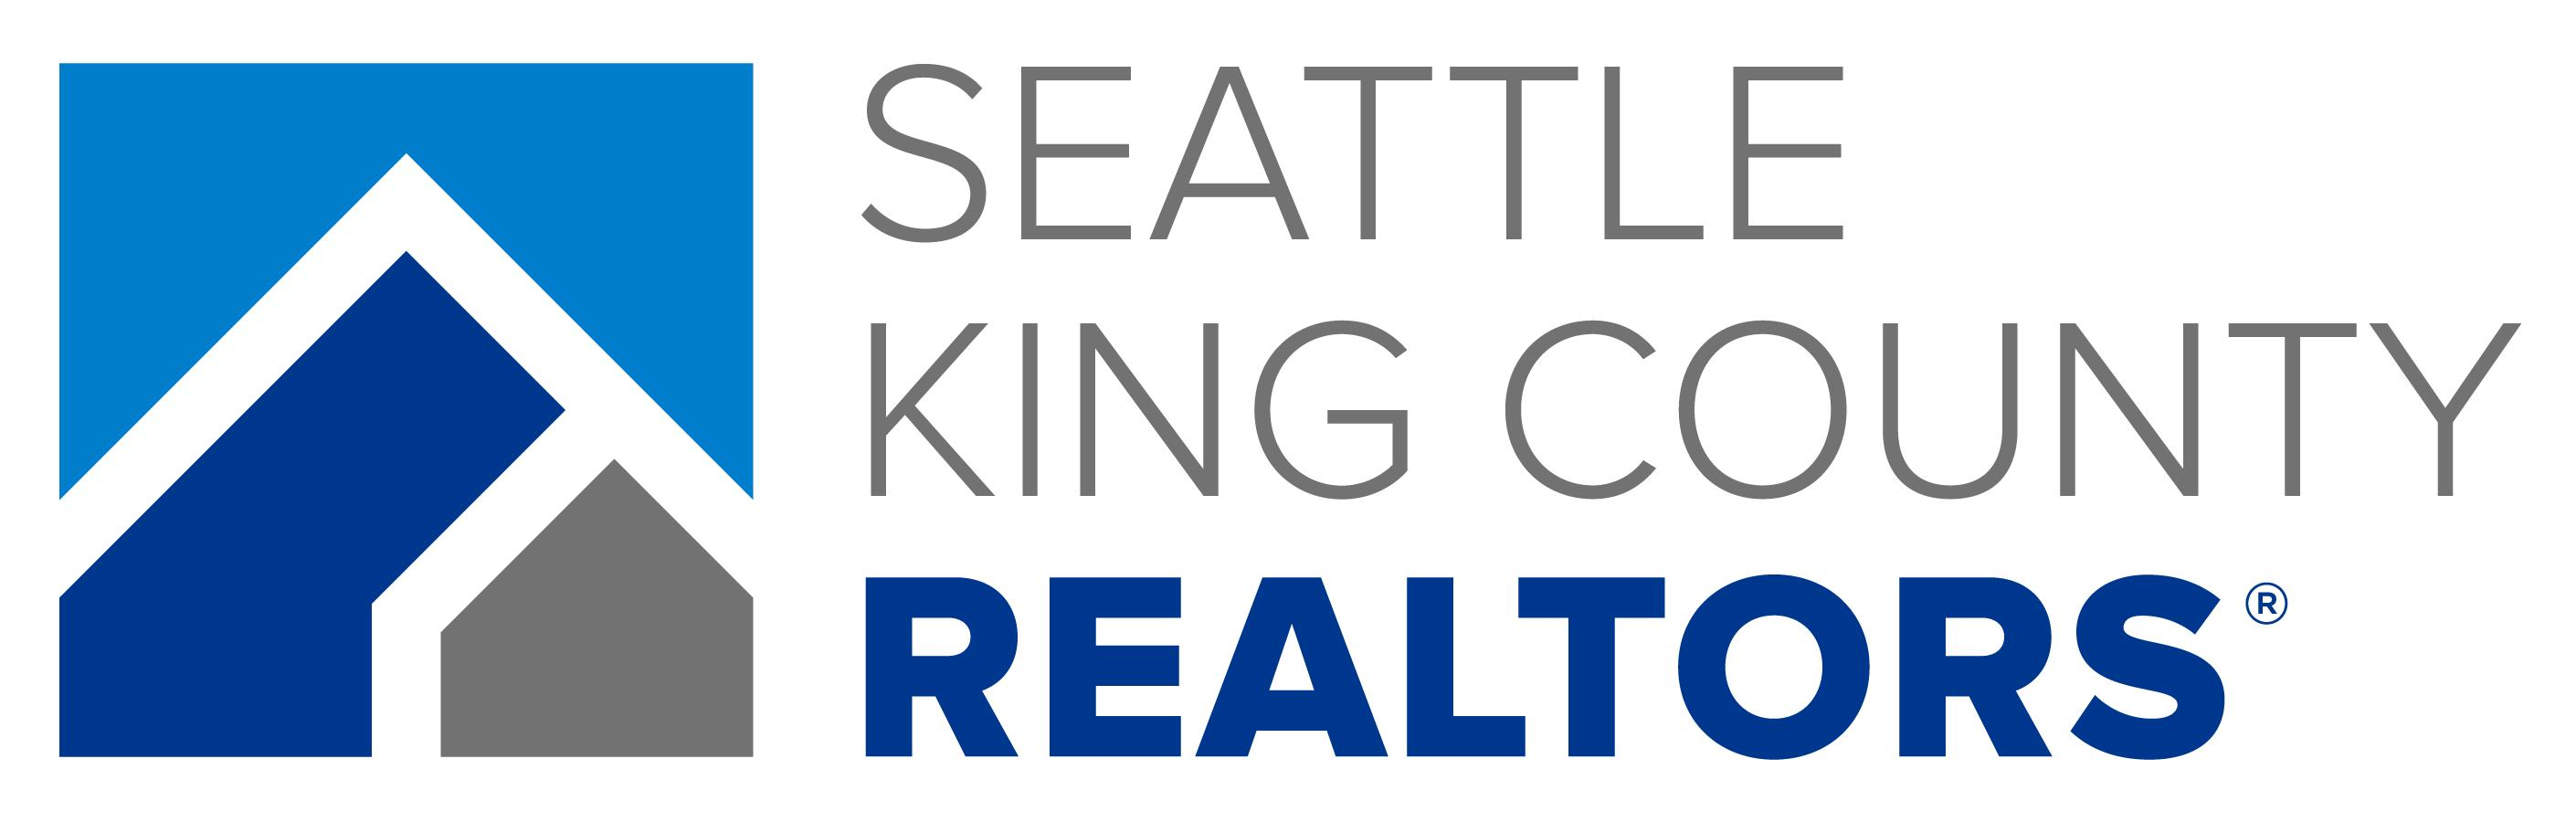 Seattle King County REALTORS® profile image